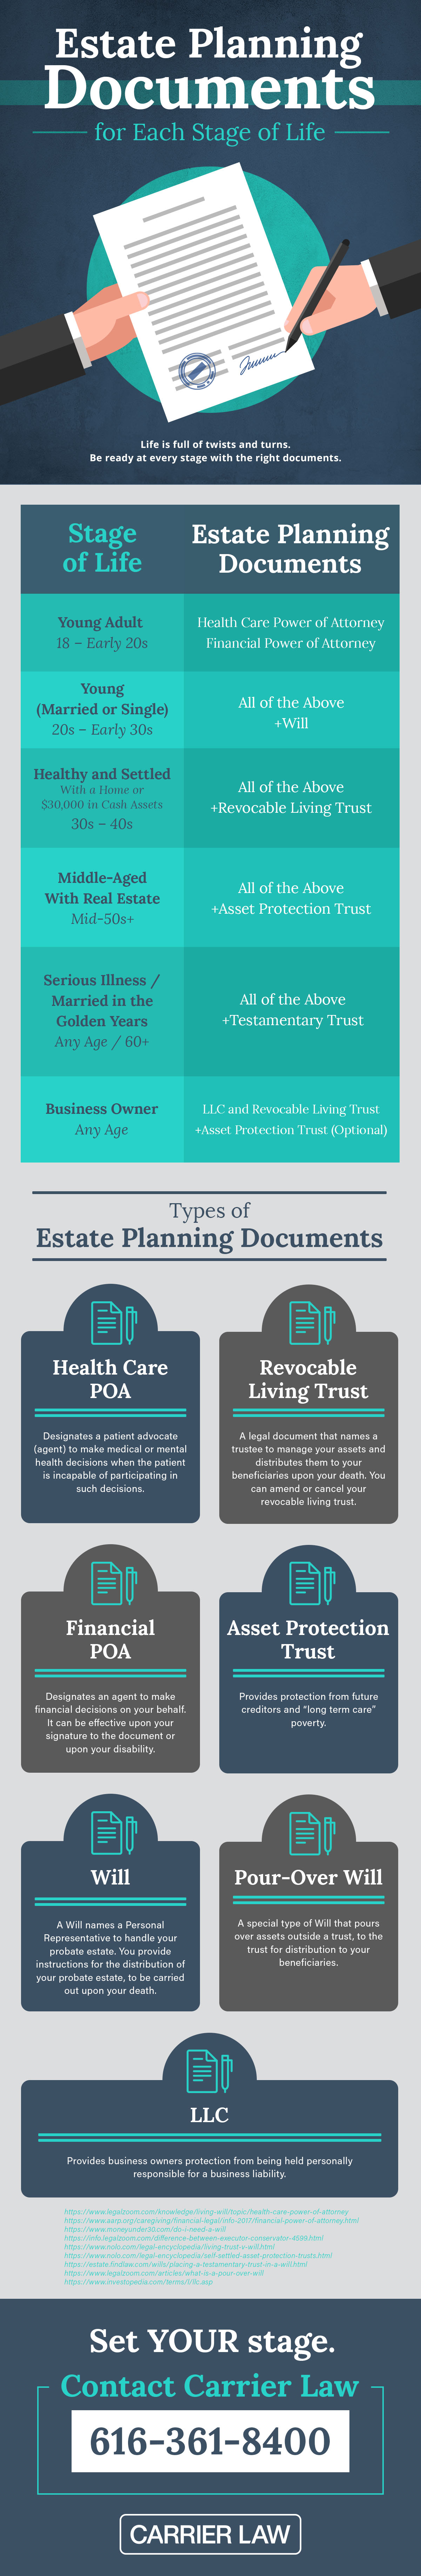 Estate Planning Through Life